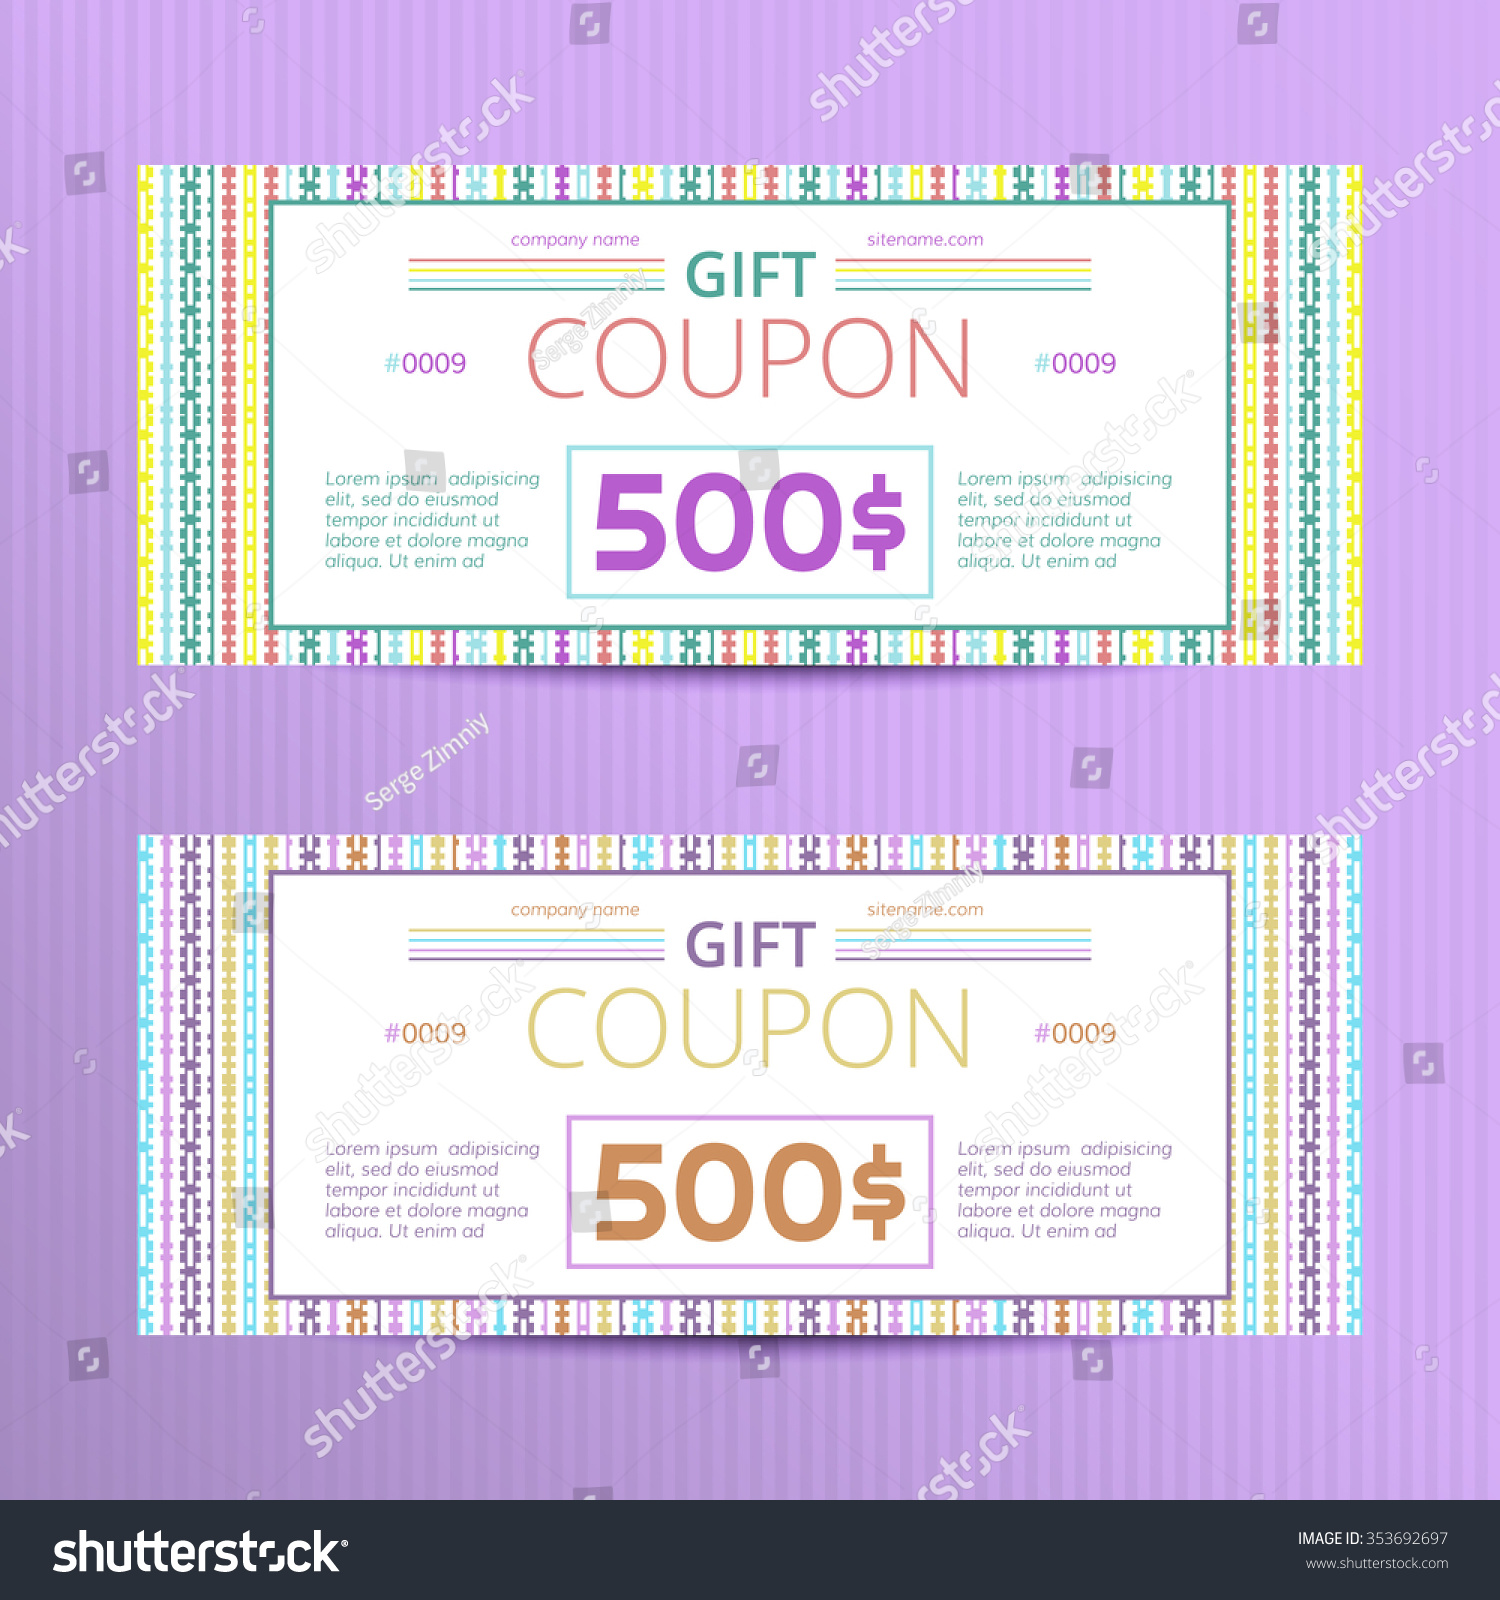 vector illustration of gift vouchers discount cards s save to a lightbox